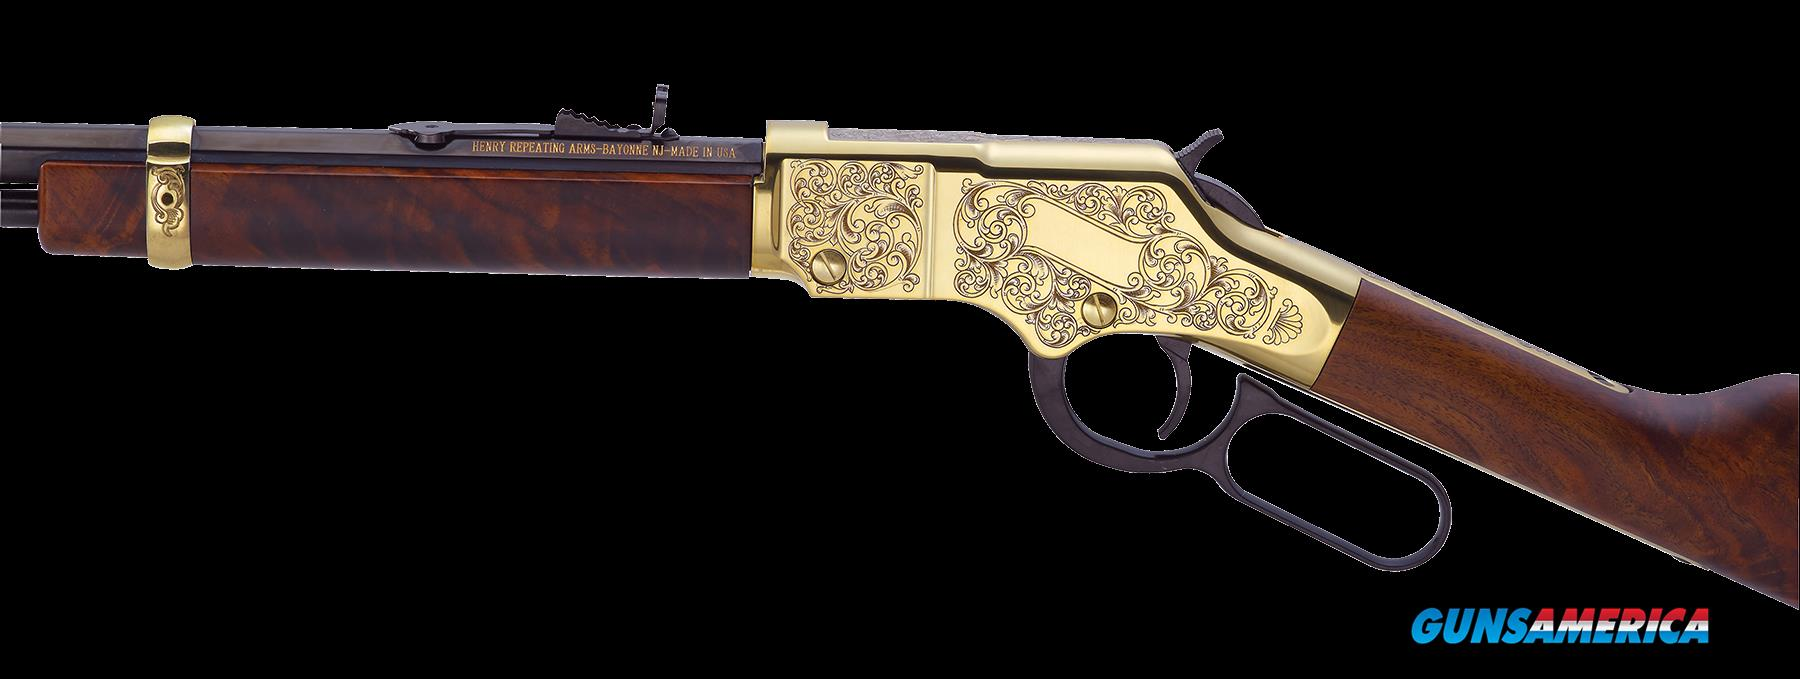 "Henry H004D3 Golden Boy Deluxe Engraved 3rd Ed  22 Long Rifle 20.0"" 16+1 Gold  Guns > Rifles > Henry Rifle Company"